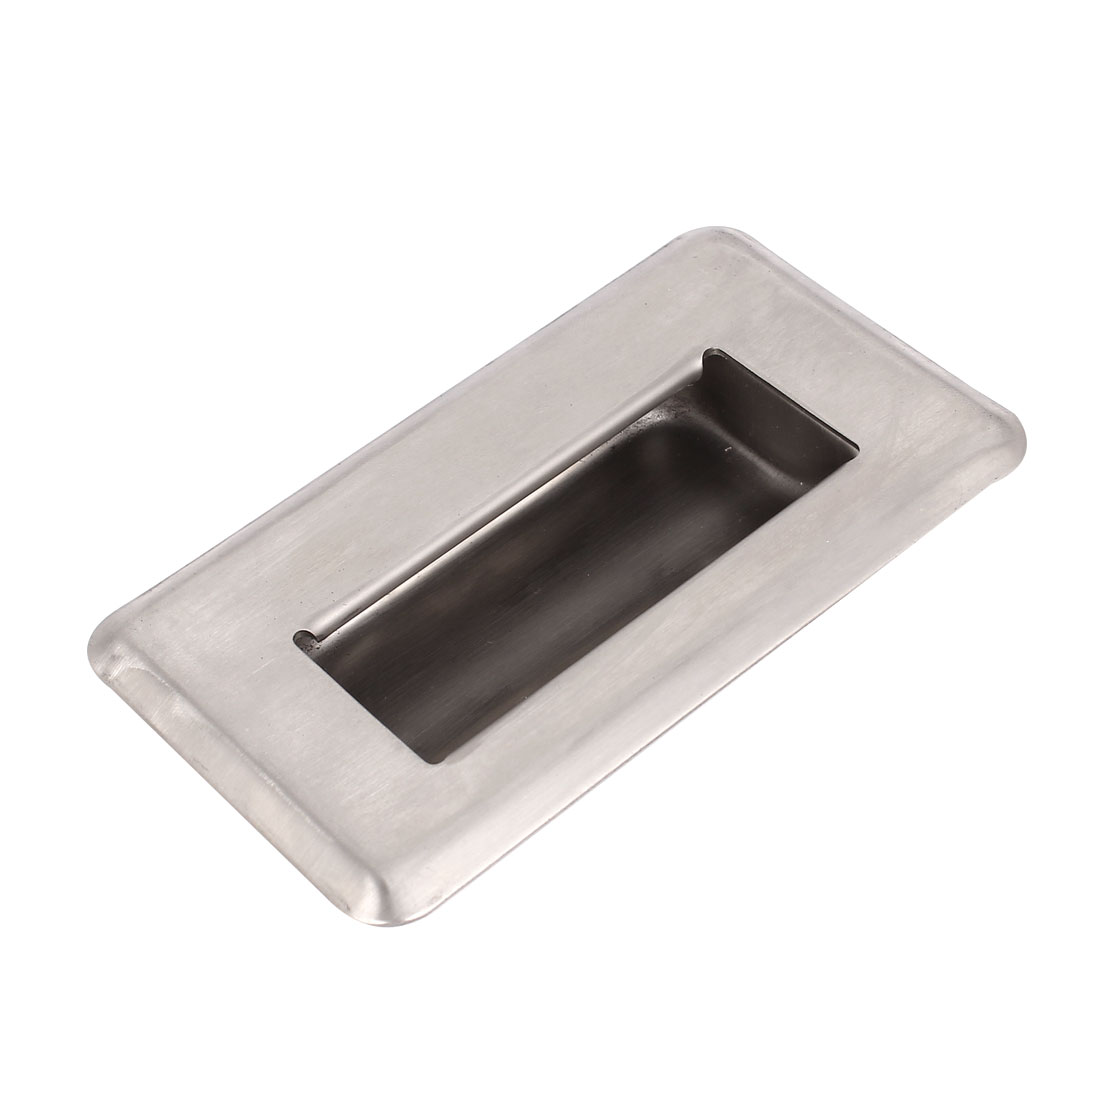 Door Drawer 109mm x 62mm Stainless Steel Recessed Flush Sliding Pull Handle